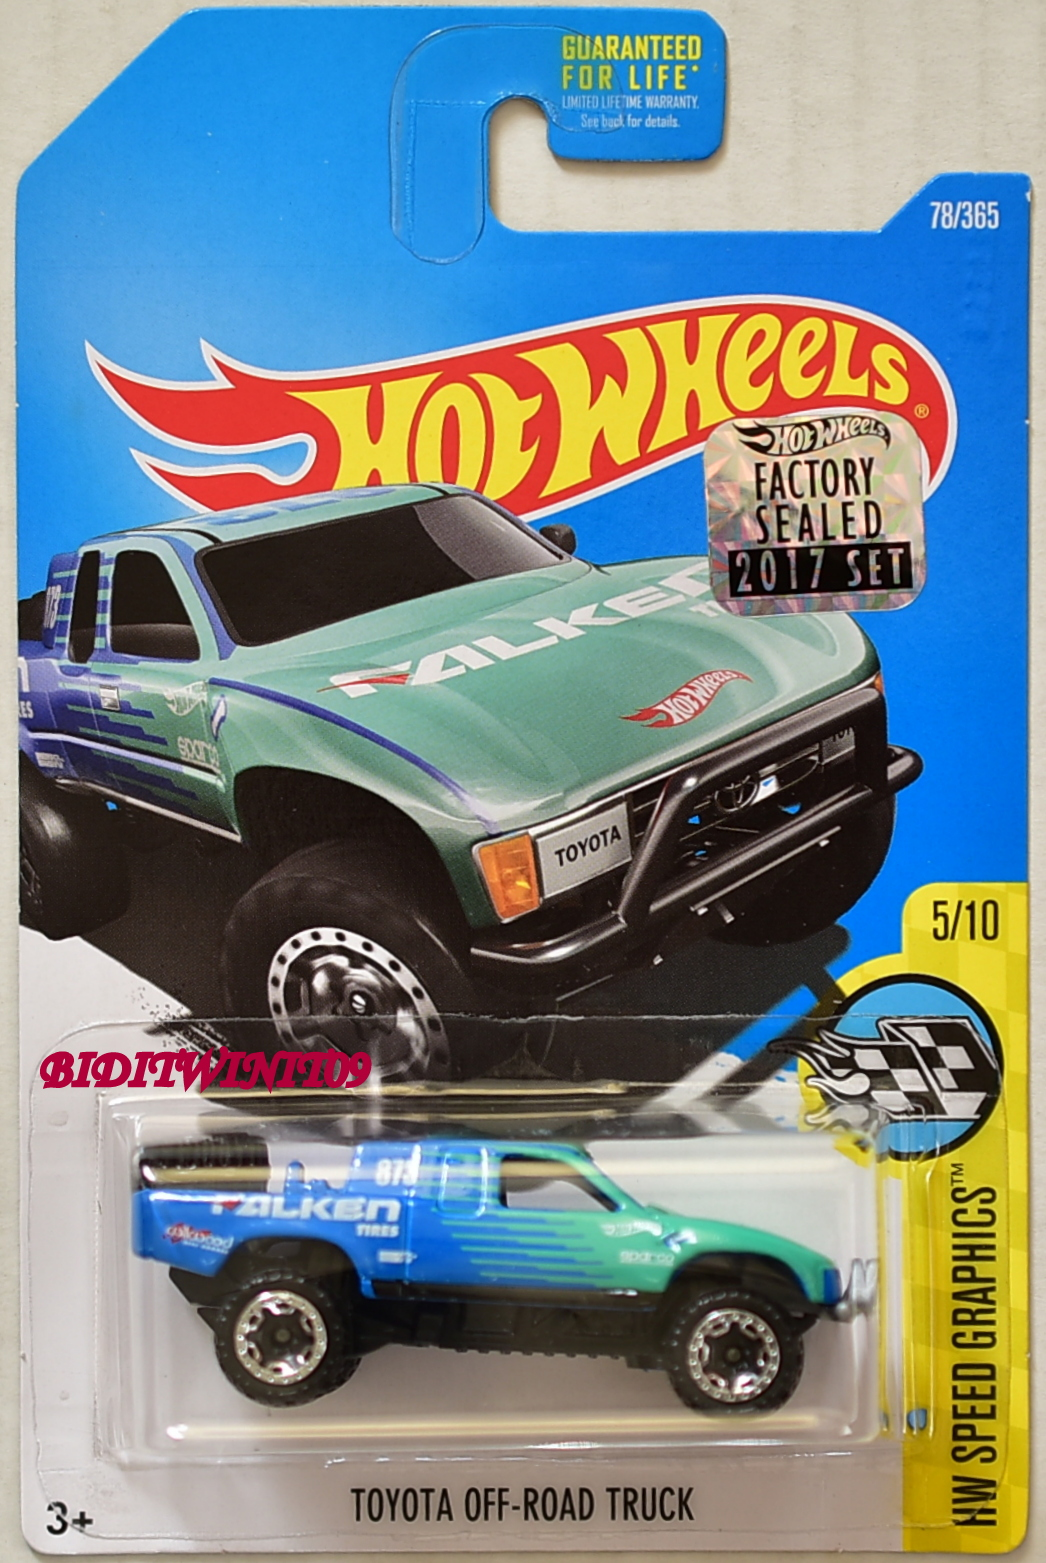 HOT WHEELS 2017 SPEED GRAPHICS TOYOTA OFF-ROAD TRUCK FALKEN FACTORY SEALED